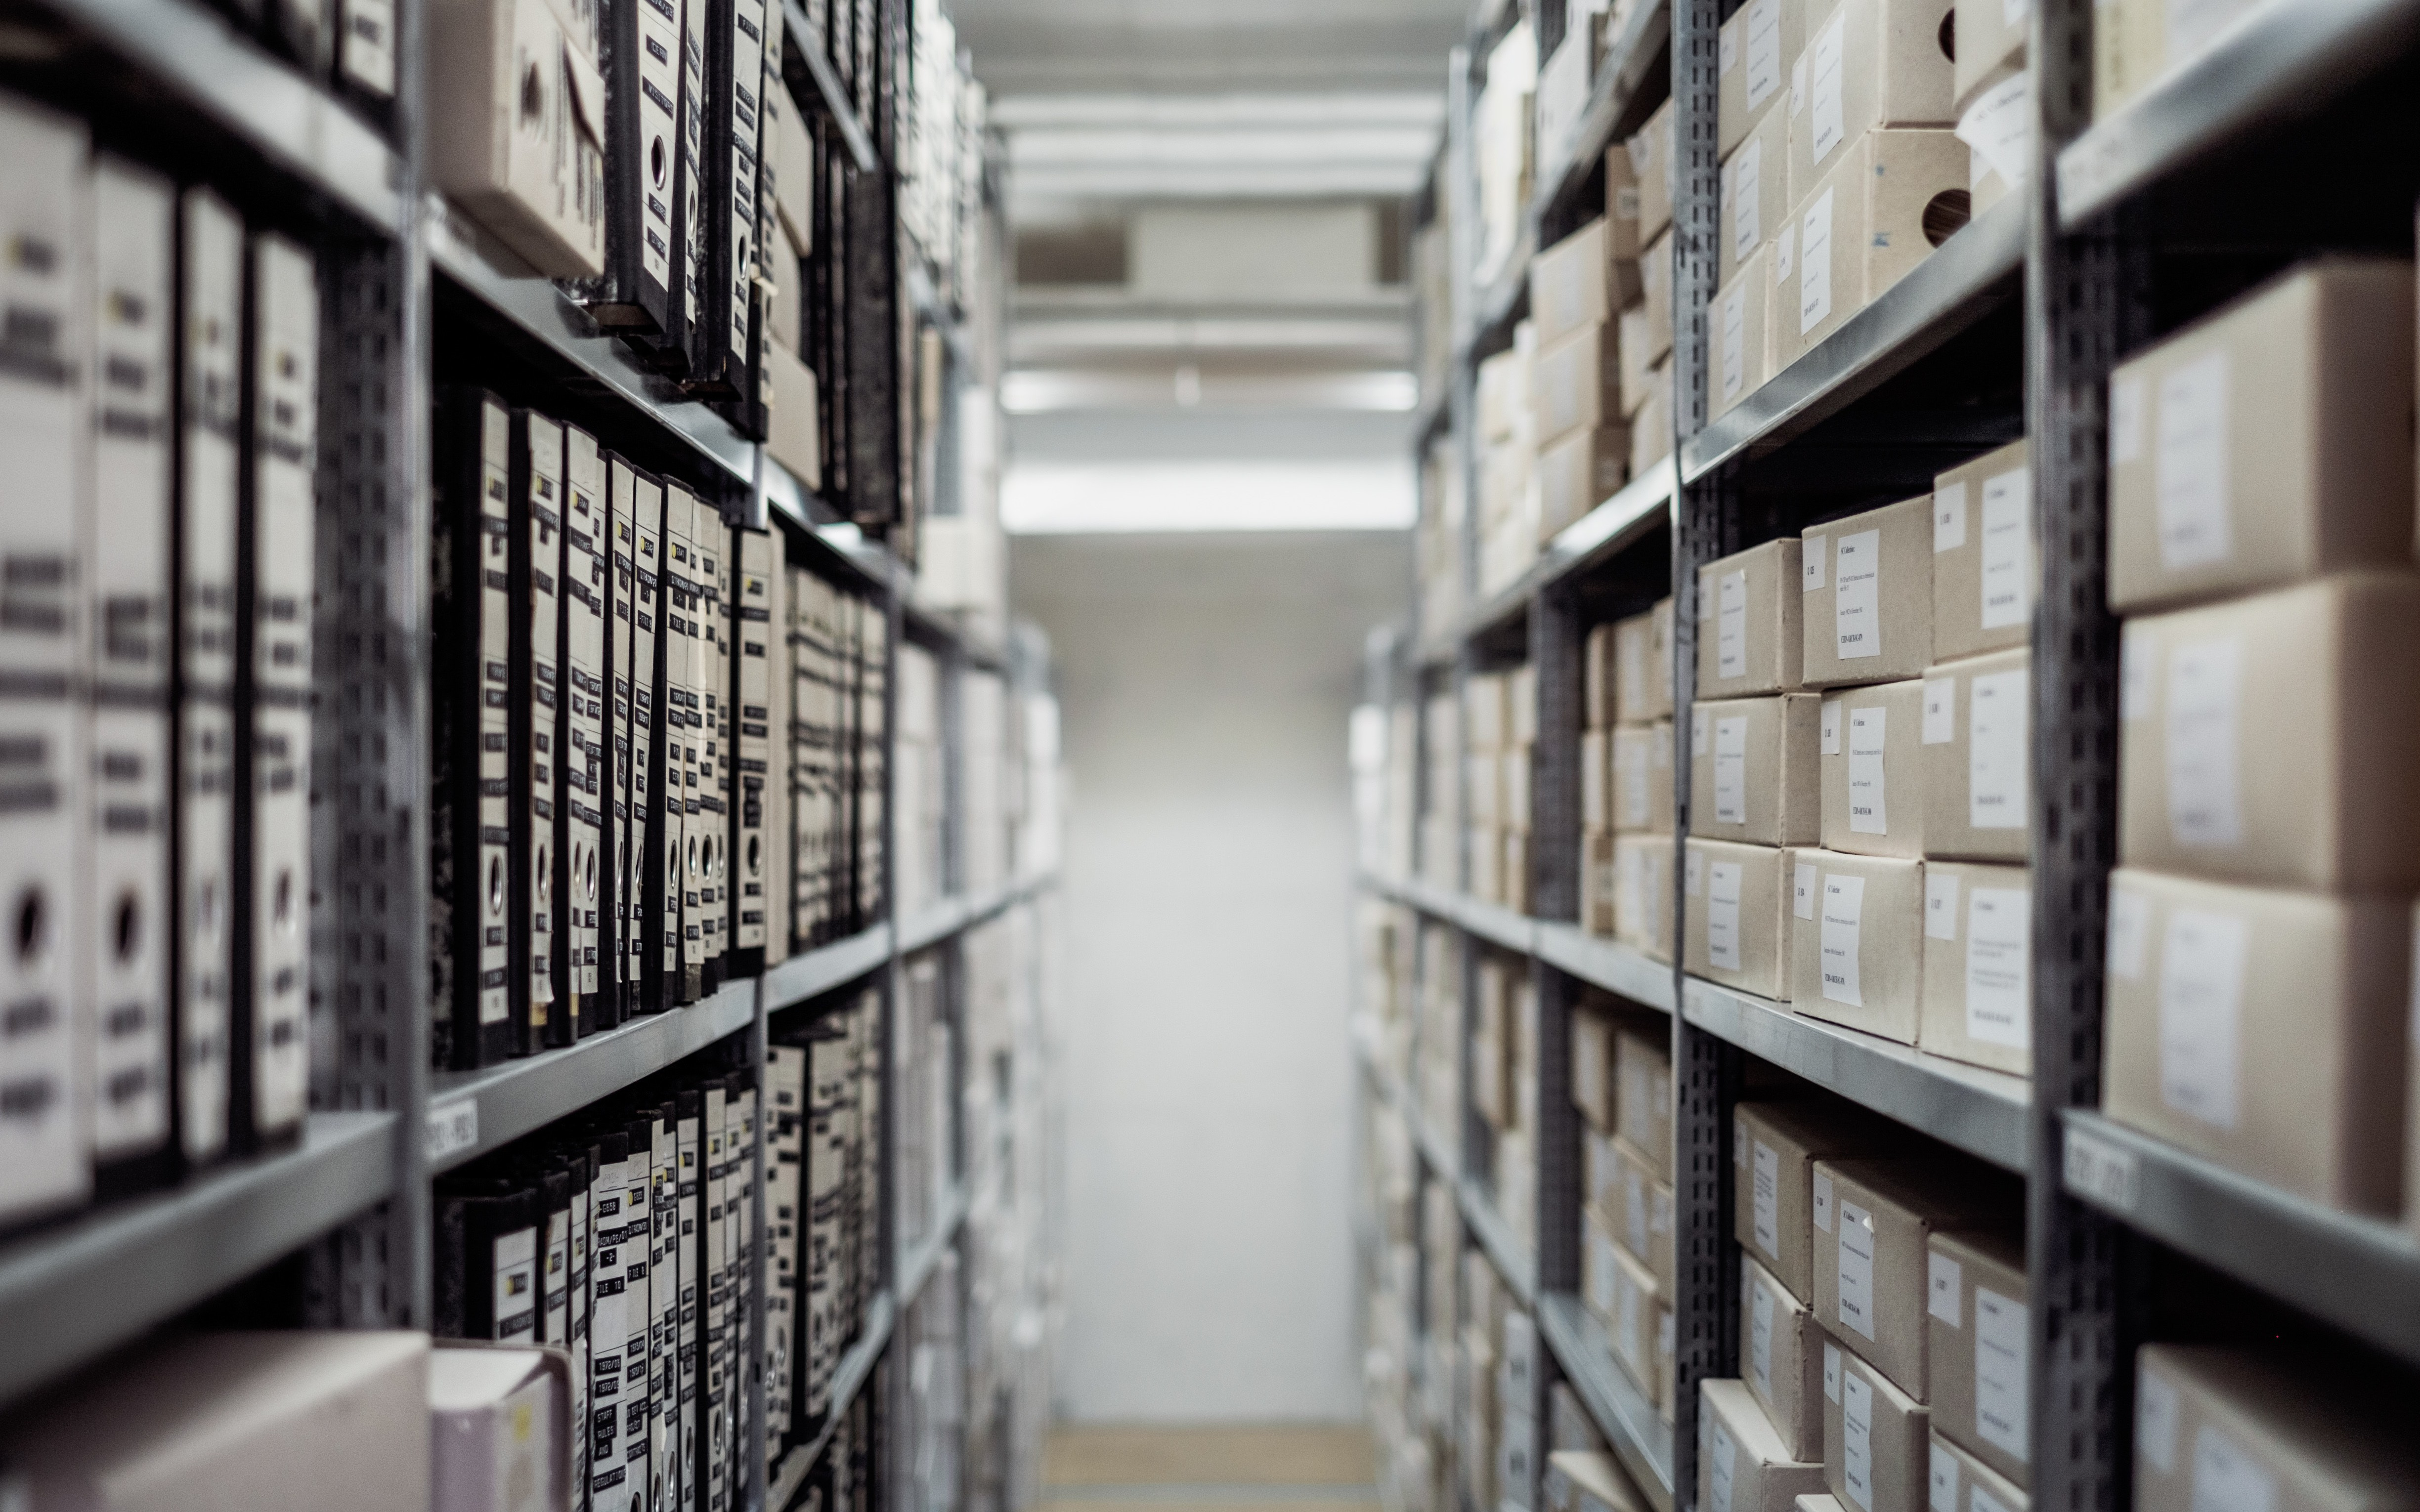 How to Work With Avro Files - DZone Big Data